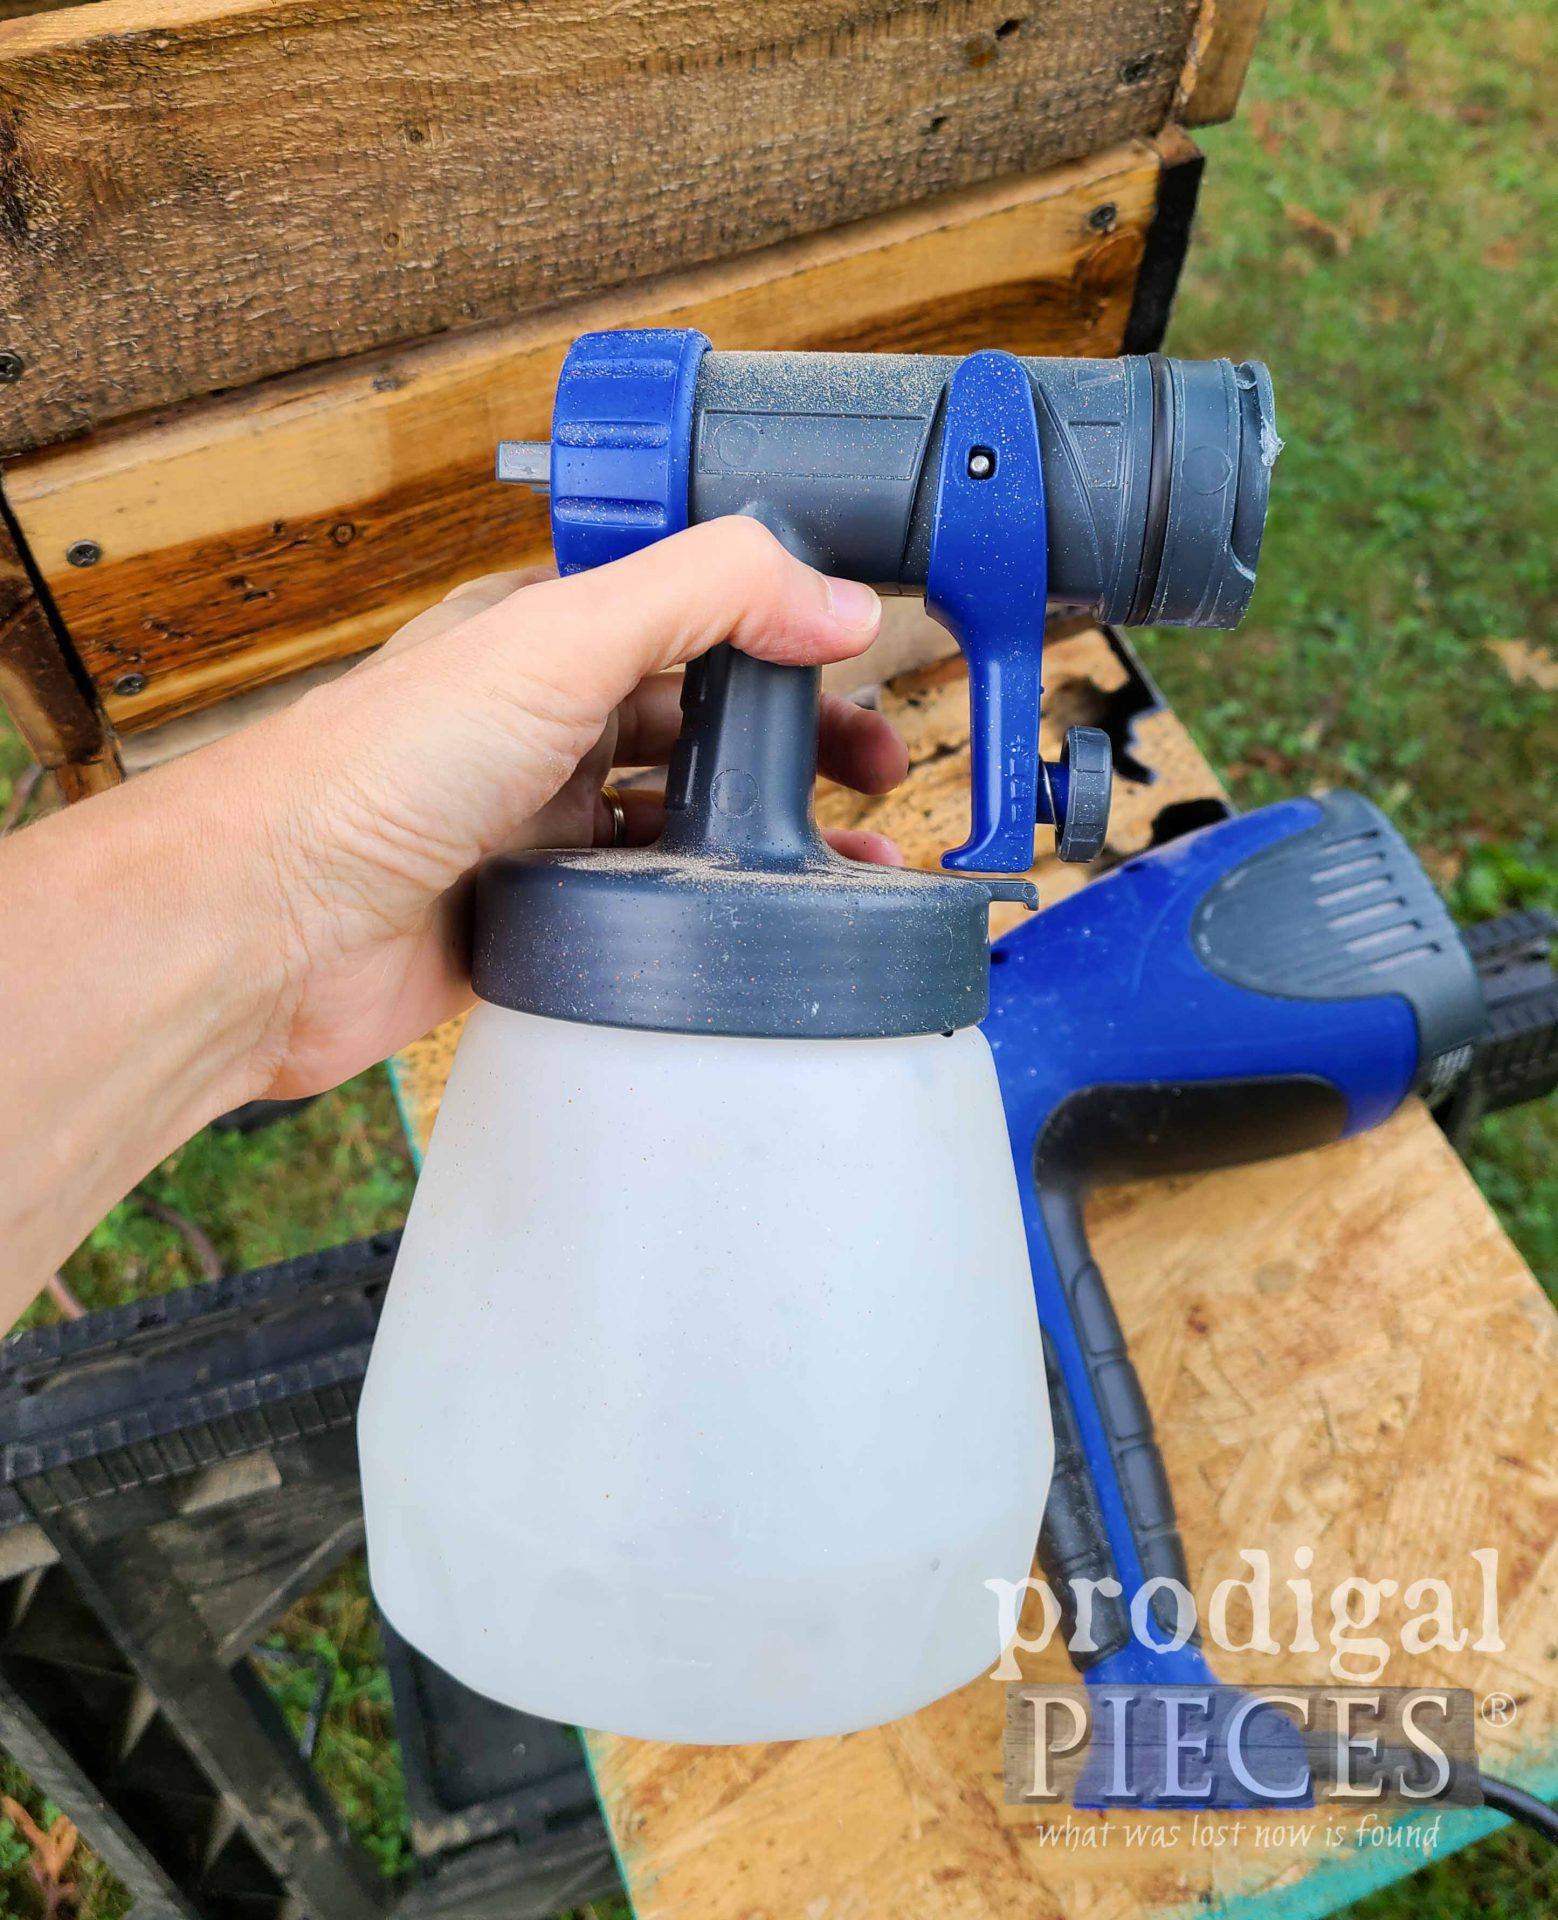 Quick Release Feature on the HomeRight Quick Finish Sprayer shown by Larissa of Prodigal Pieces | prodigalpieces.com #prodigalpieces